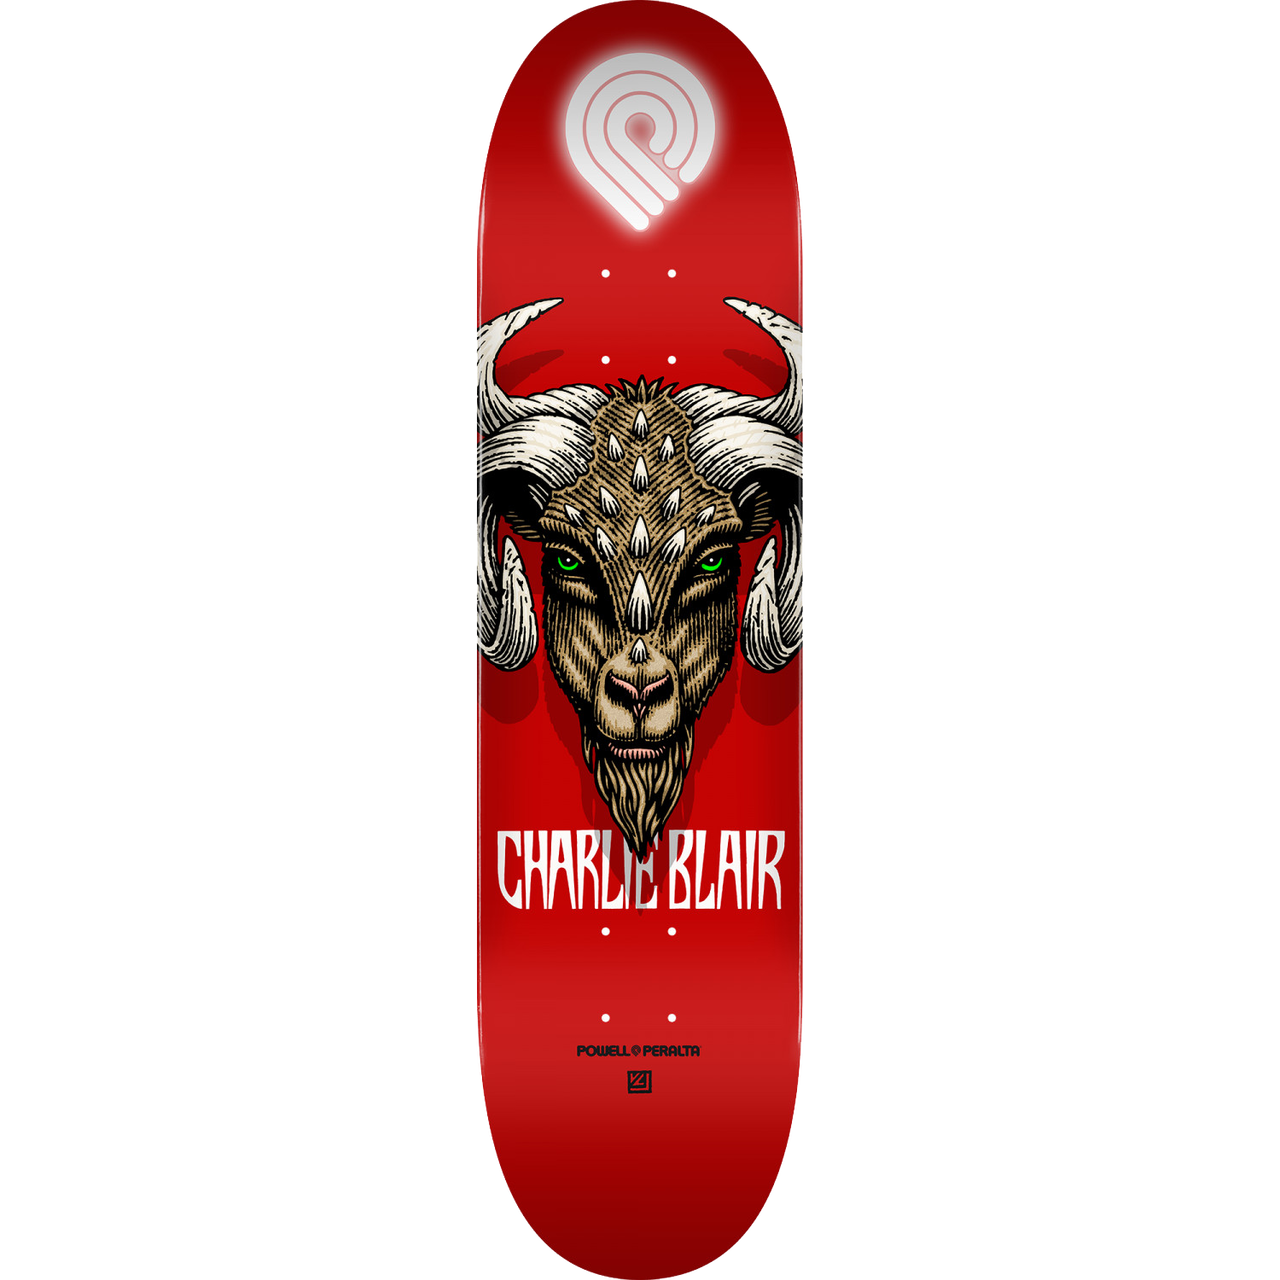 Powell Peralta Charlie Blair Goat Deck 8.25